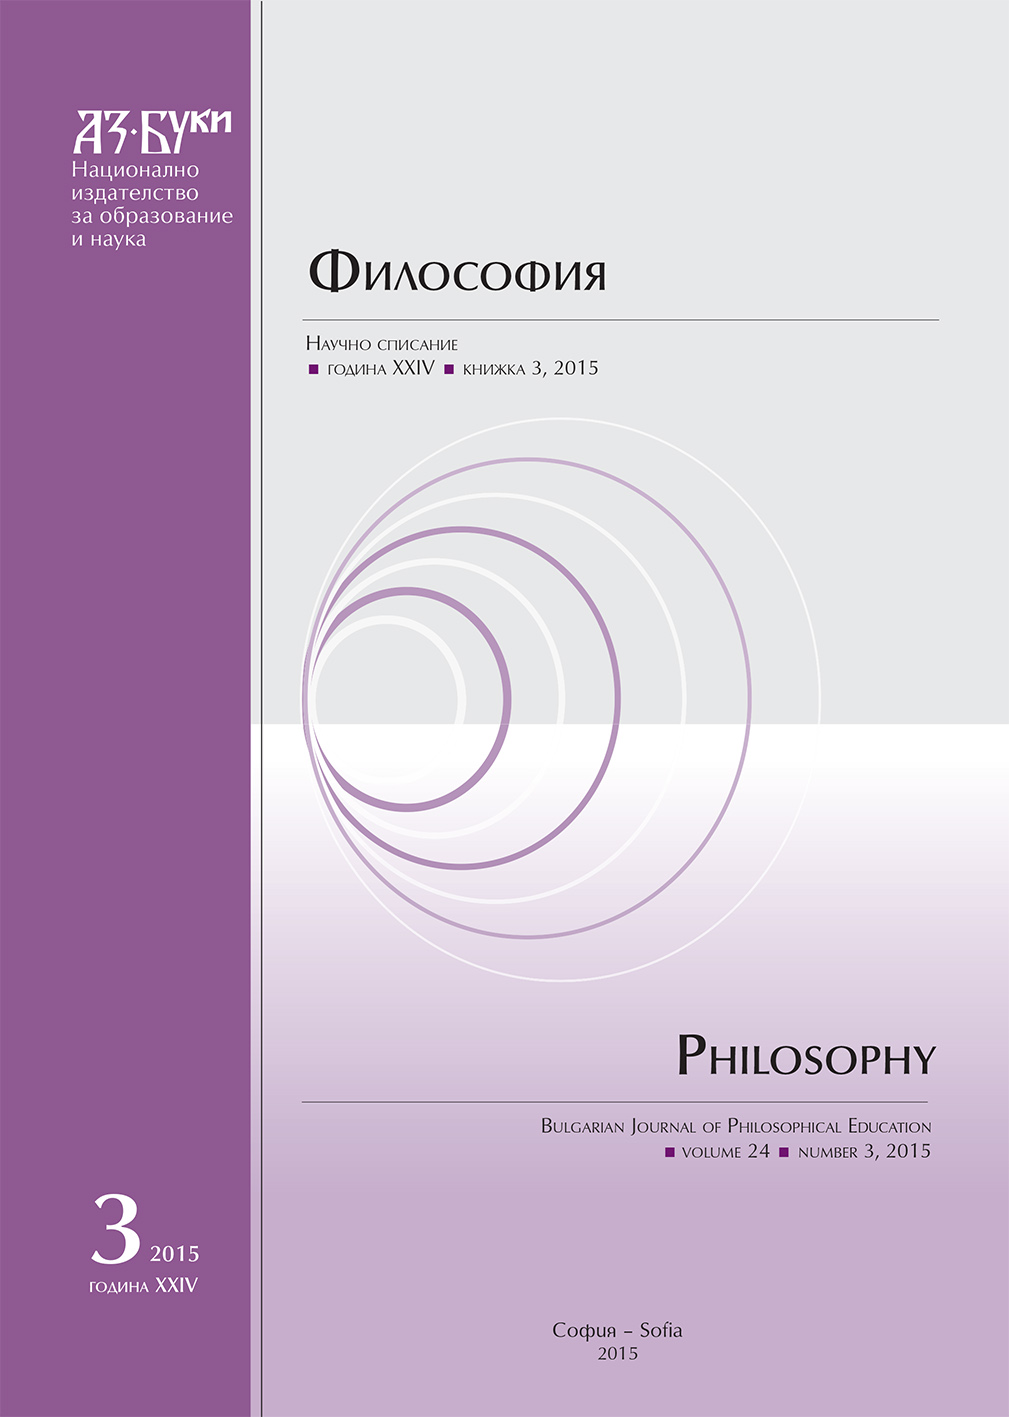 Christian Ideas on Freedom of Man and Moral Choice According to the Representatives of Russian Religious Philosophy (F. Dostoevski, N. Berdyaev and B. Visheslavtsev) Cover Image